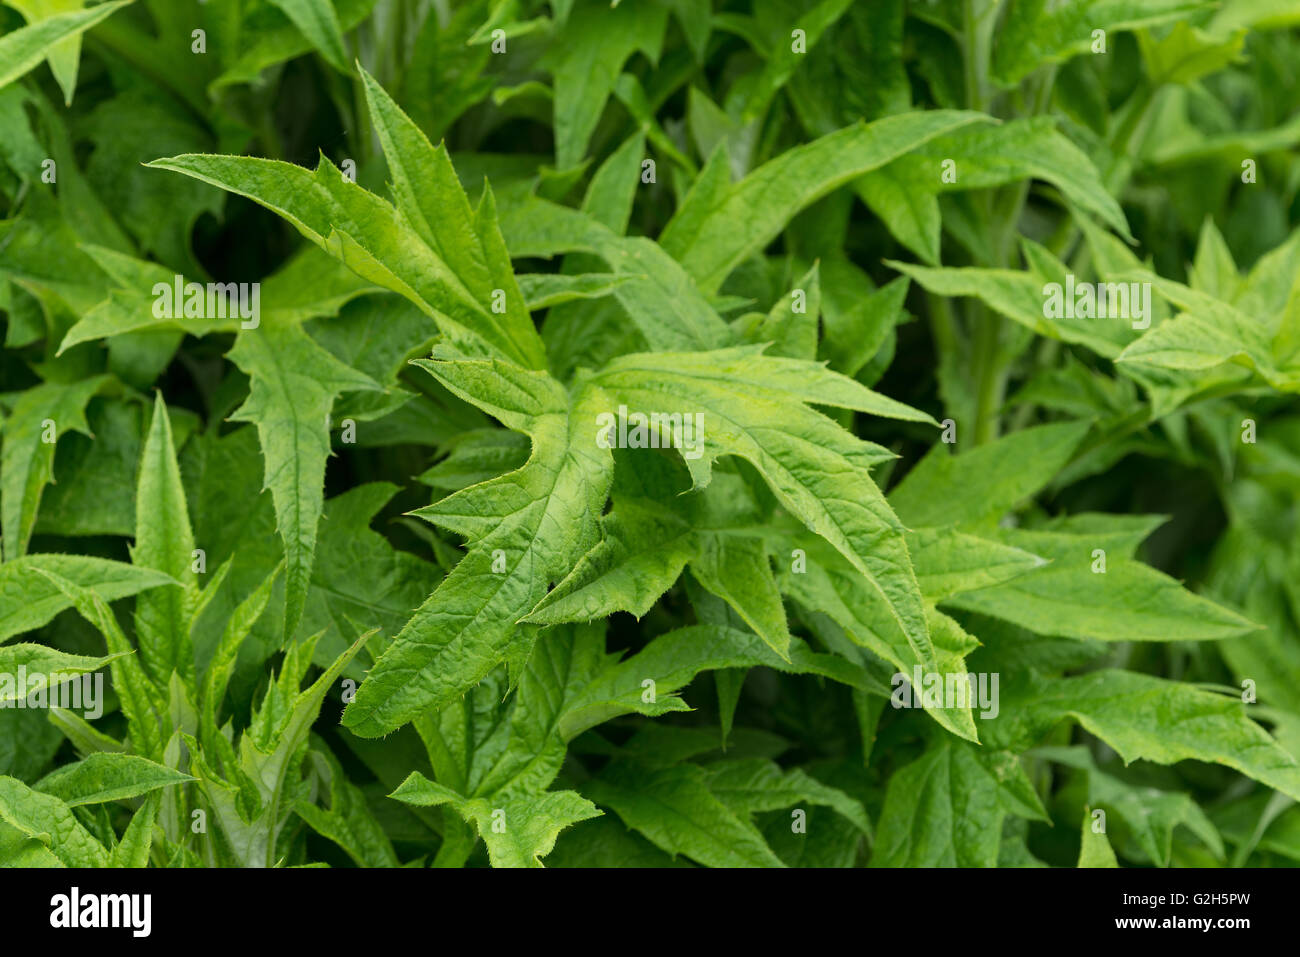 pointed branching pattern of globe thistle Echinops leaves an allergy as fine hairs may cause rash on skin - Stock Image